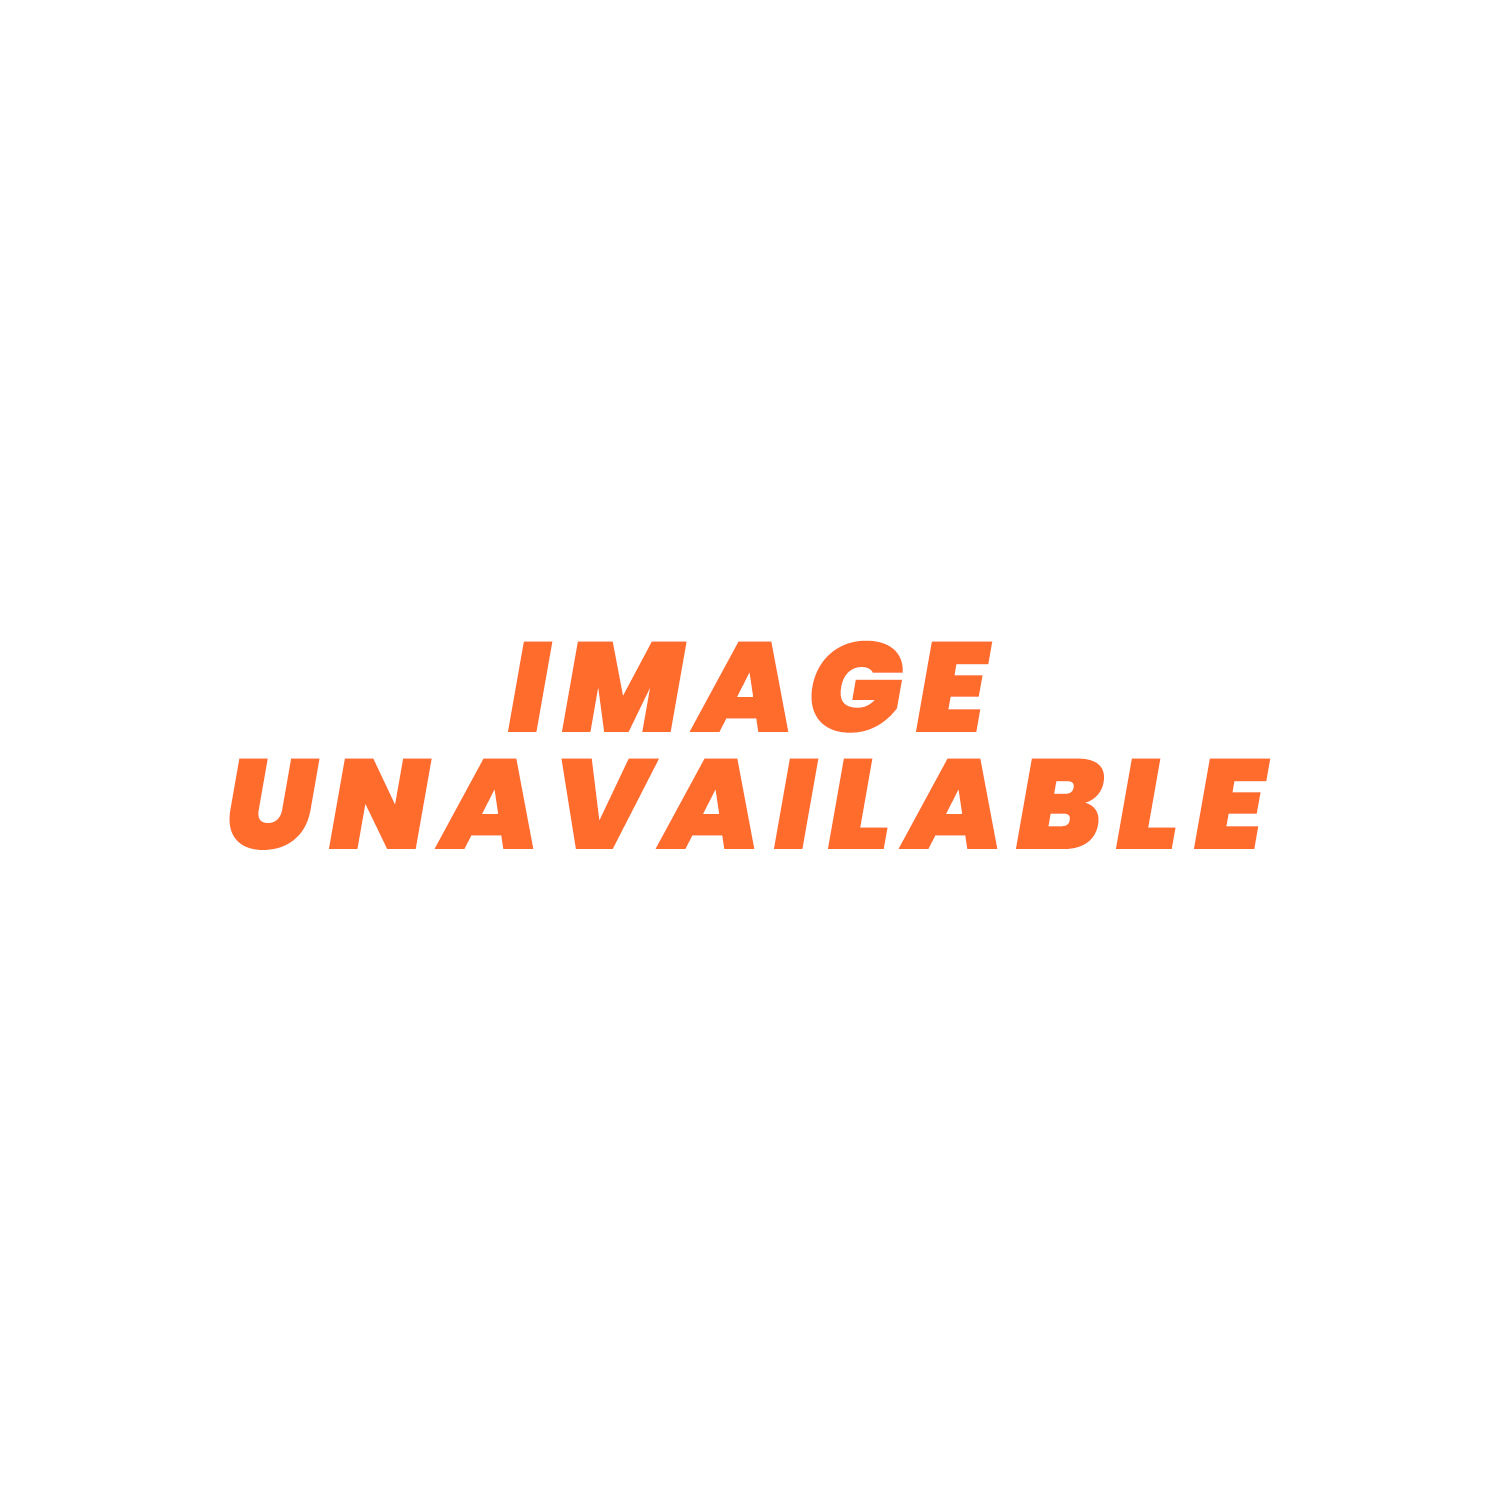 Directed Electronics 610t Relay Wiring Diagram - All Diagram ... on